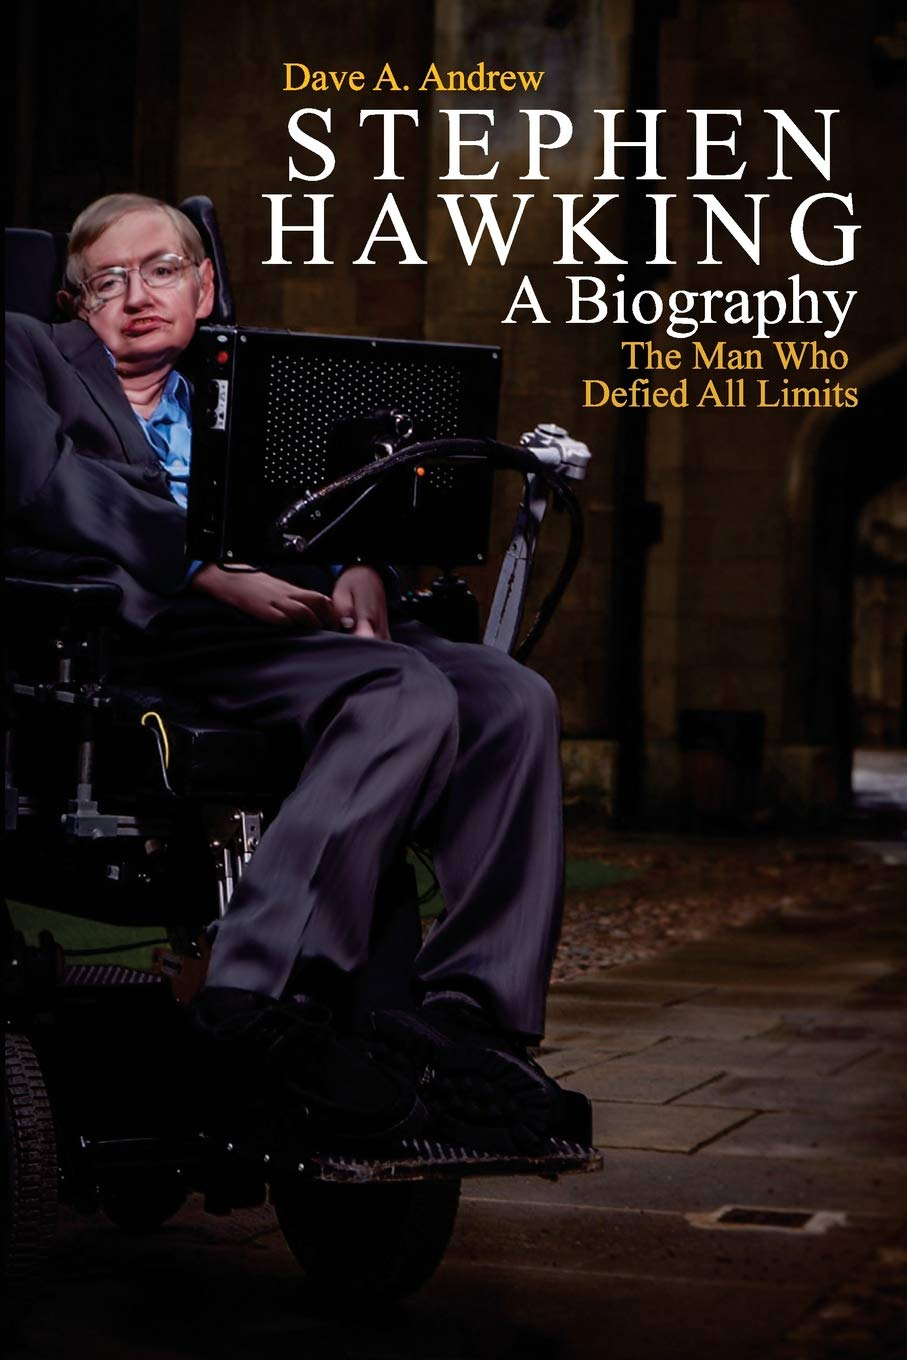 Stephen Hawking A Biography The Man Who Defied All Limits Andrew Dave A 9781986654838 Books